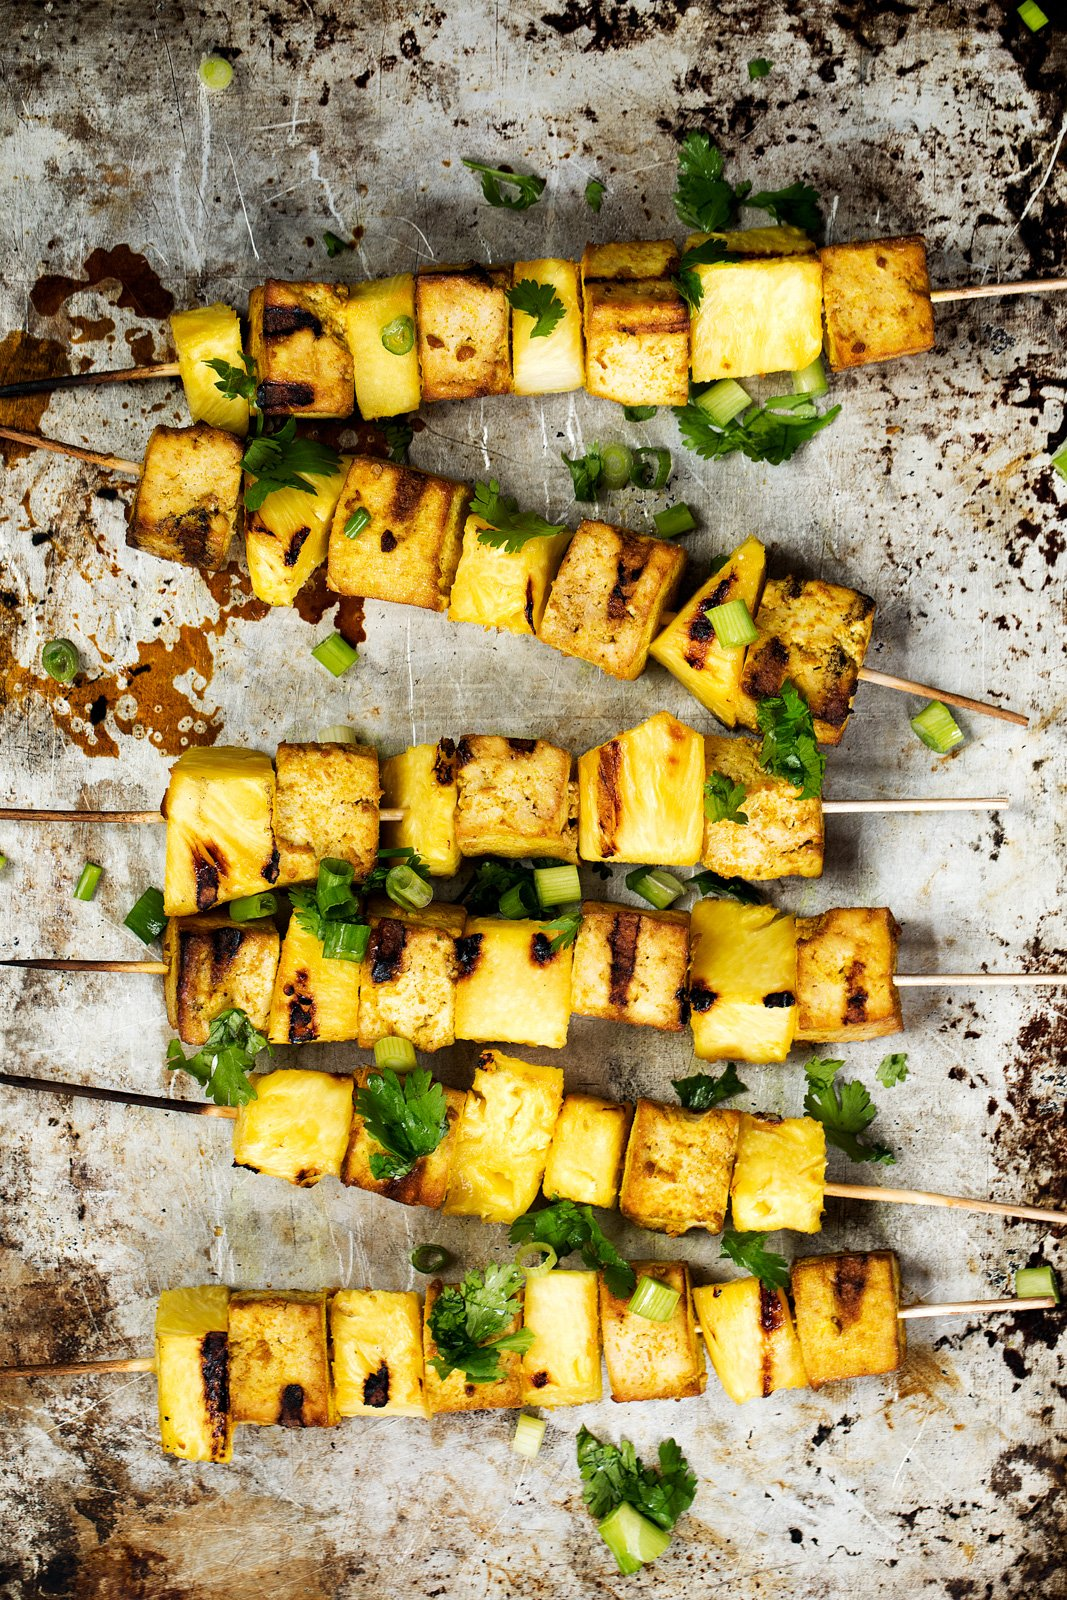 Beautiful ready to grill tofu kabobs with a soy ginger turmeric marinade and fresh pineapple cubes. Delicious and perfect for the vegetarians in your life!